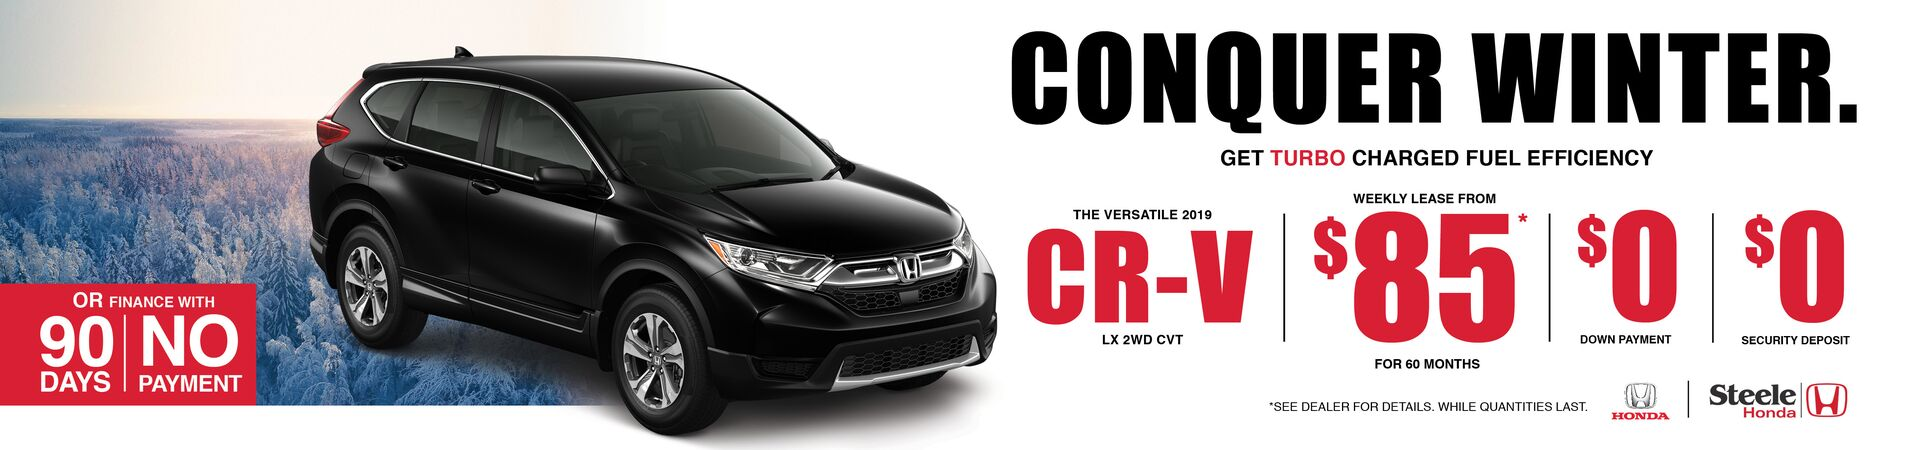 Conquer Winter with the 2019 CR-V